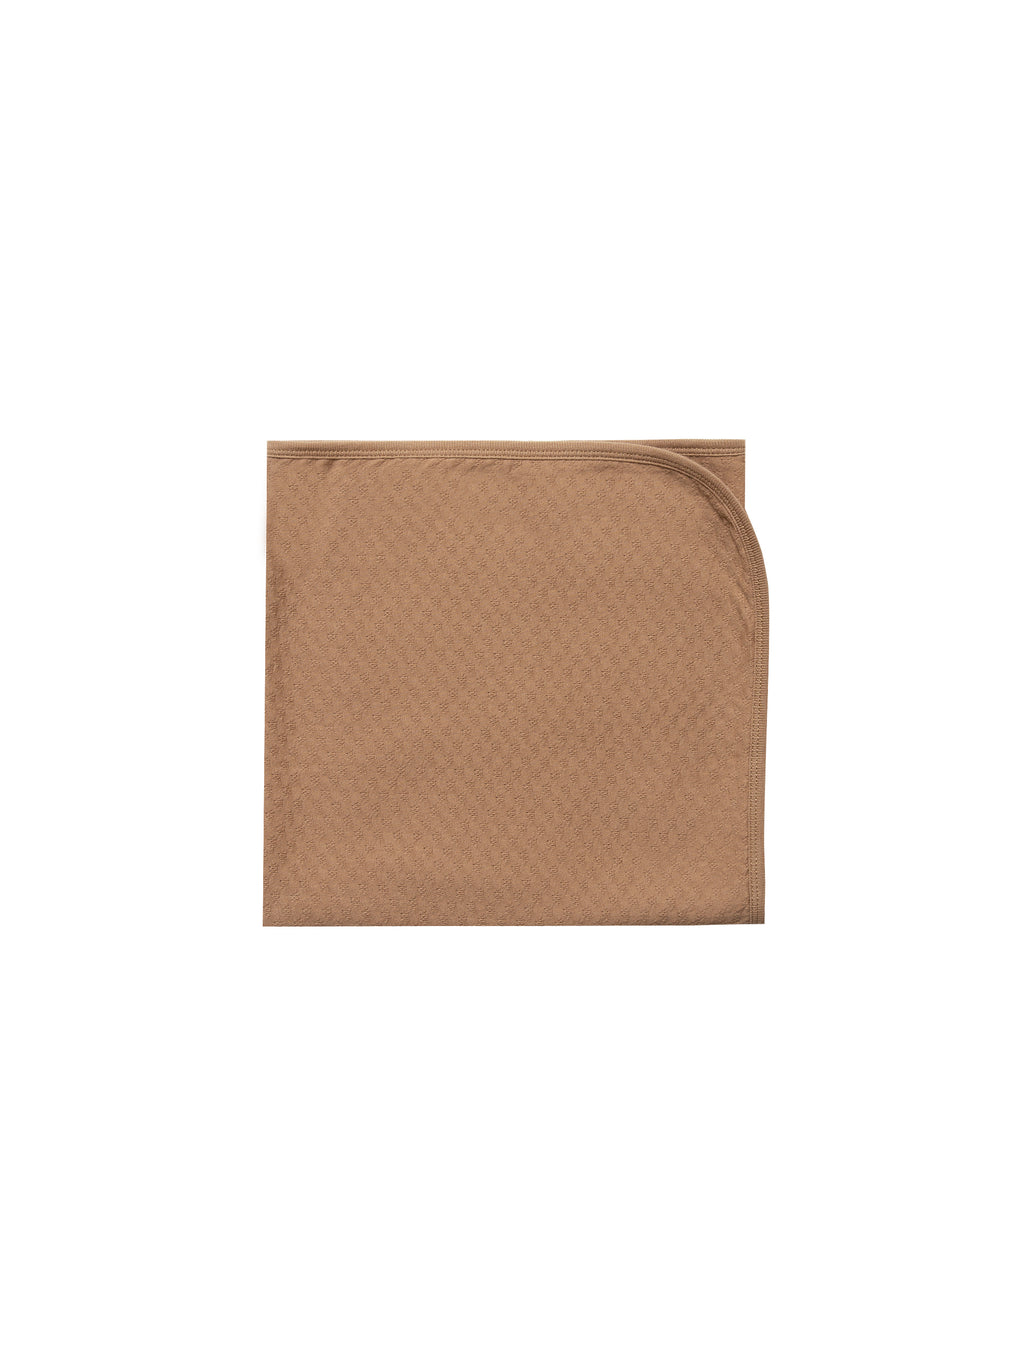 Quincy Mae - Pointelle Baby Blanket (Copper)